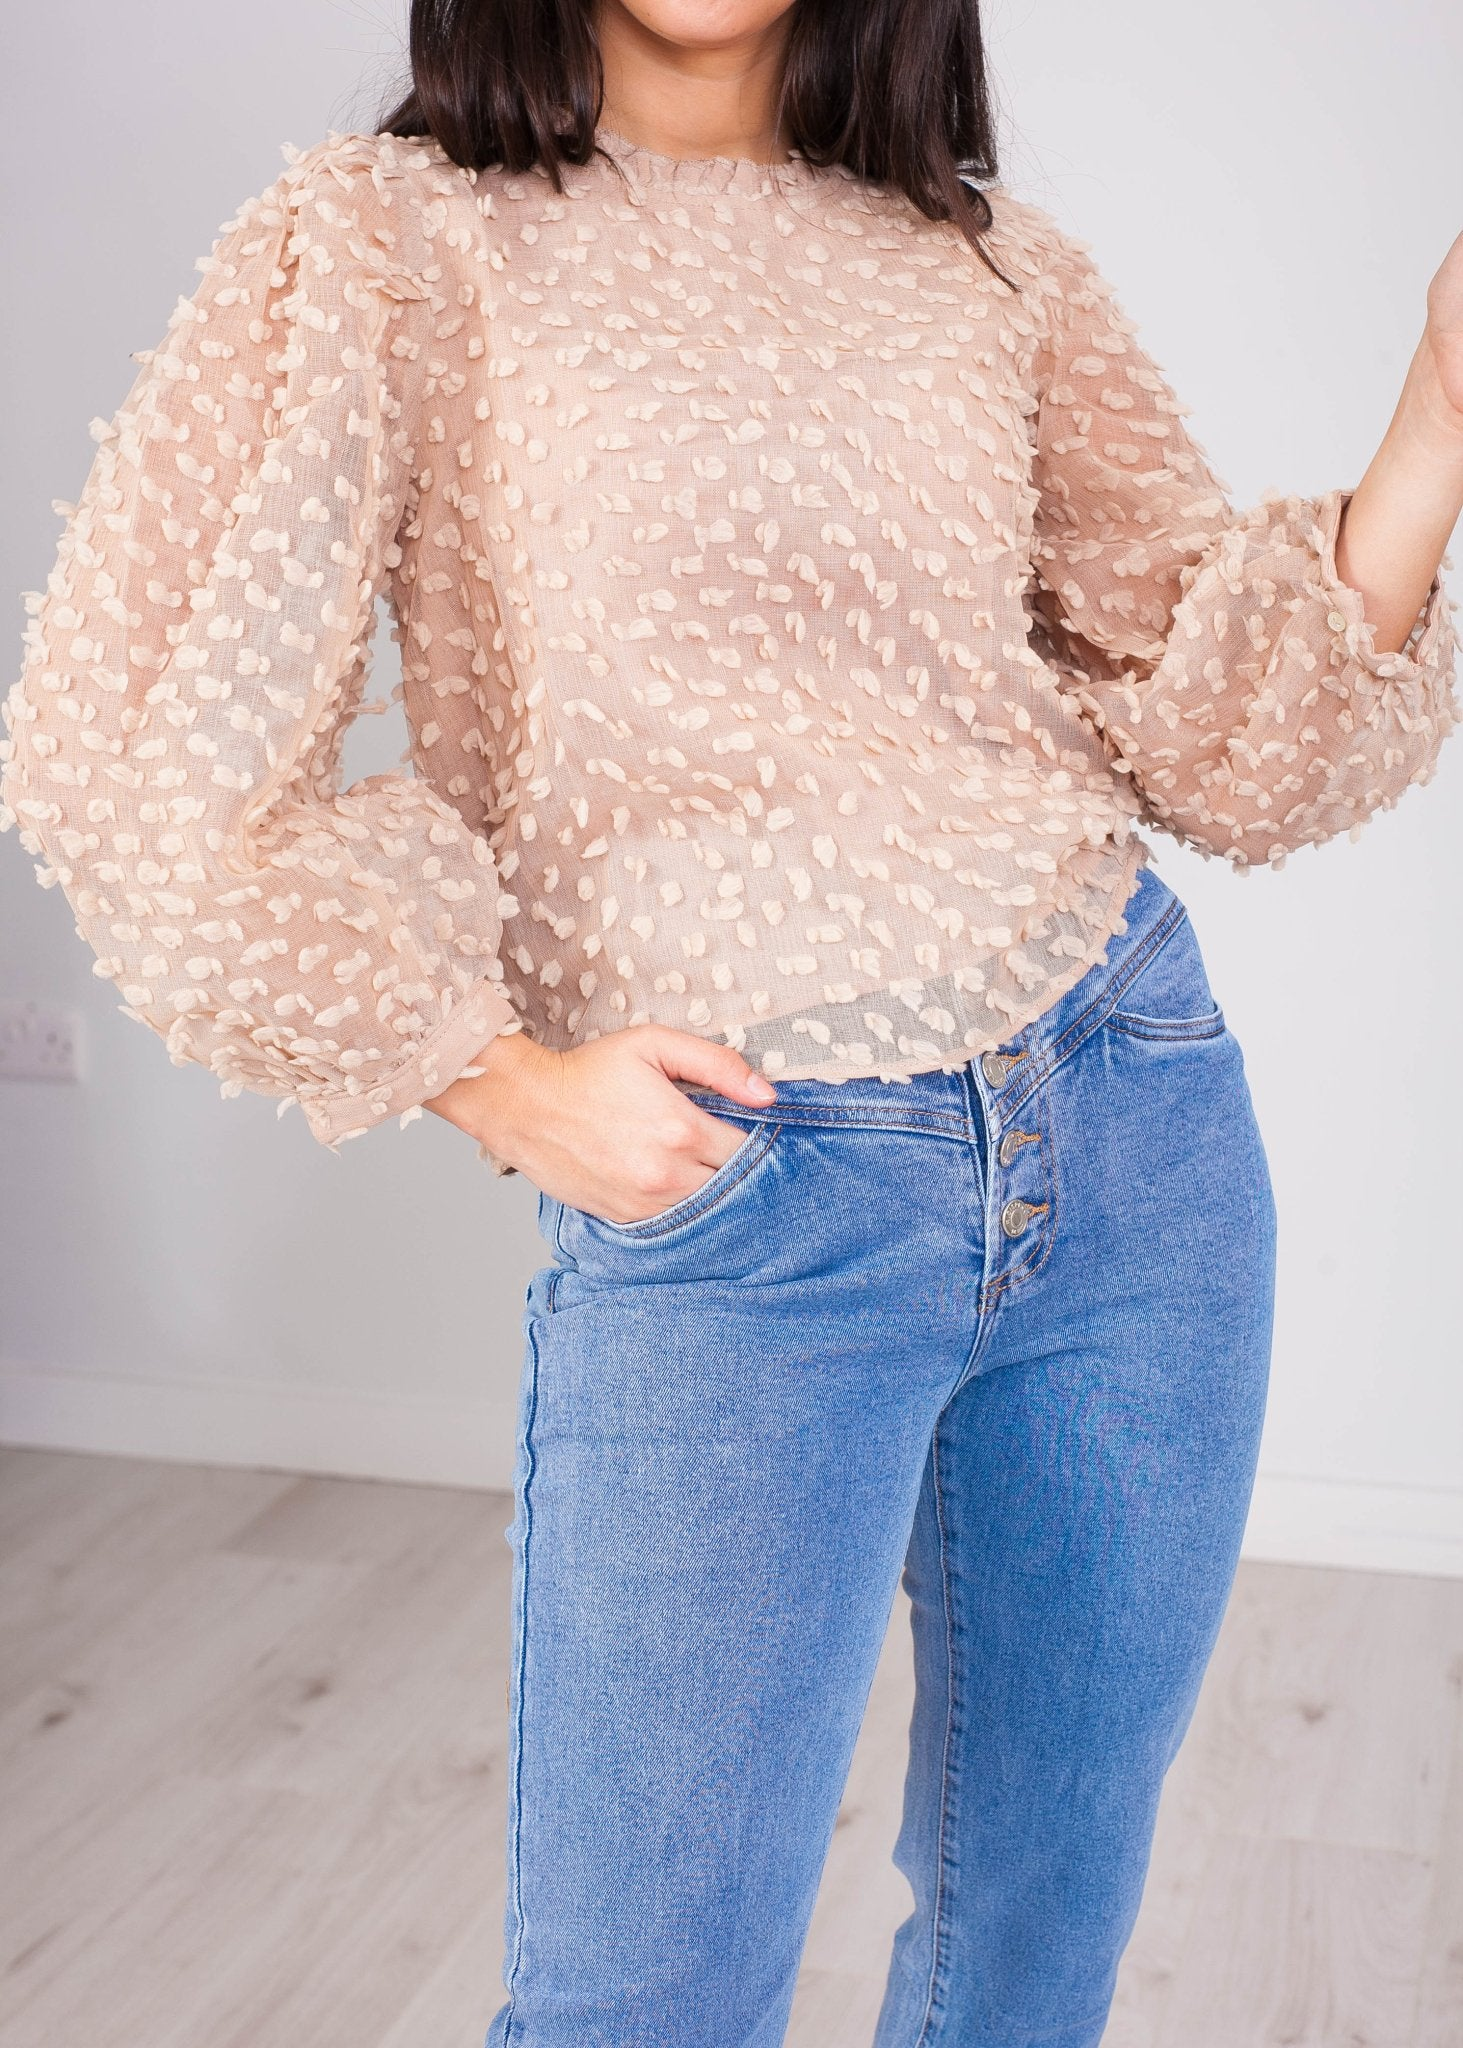 Emilia Tan High Neck Blouse - The Walk in Wardrobe